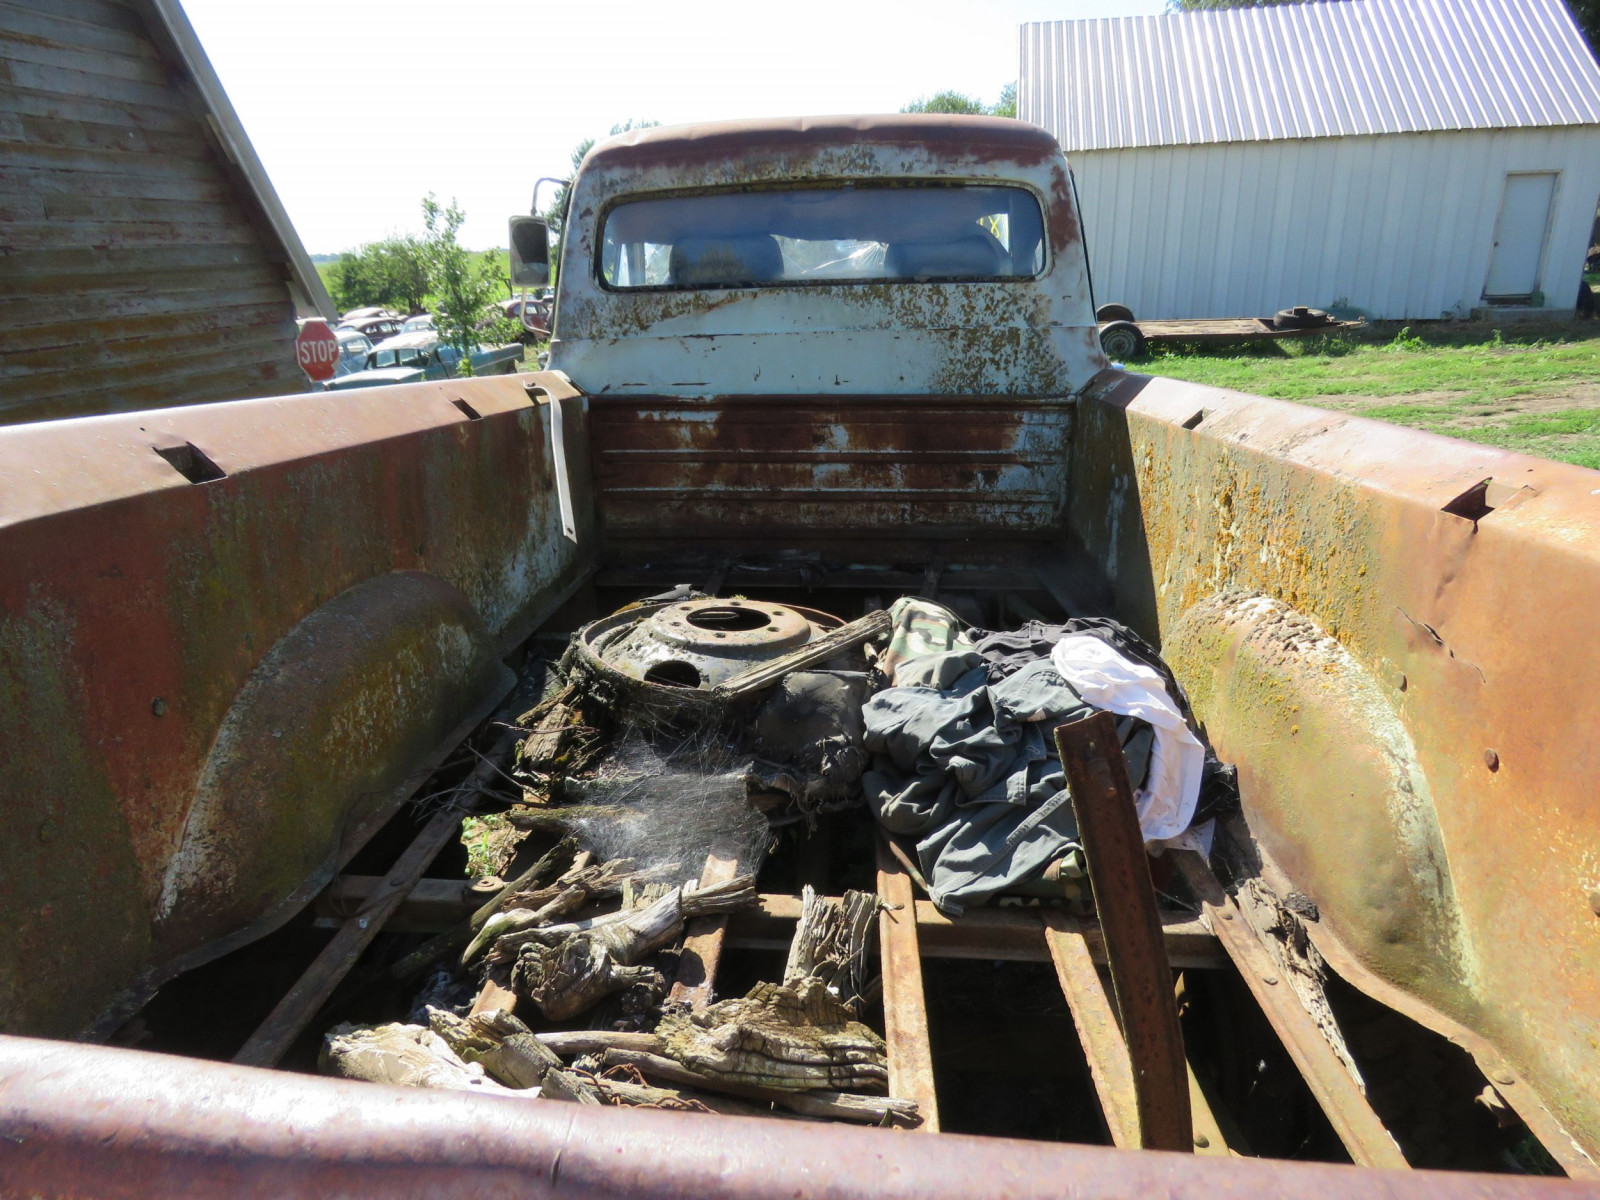 1955 Ford F350 1 ton Pickup for Rod or Restore - Image 6